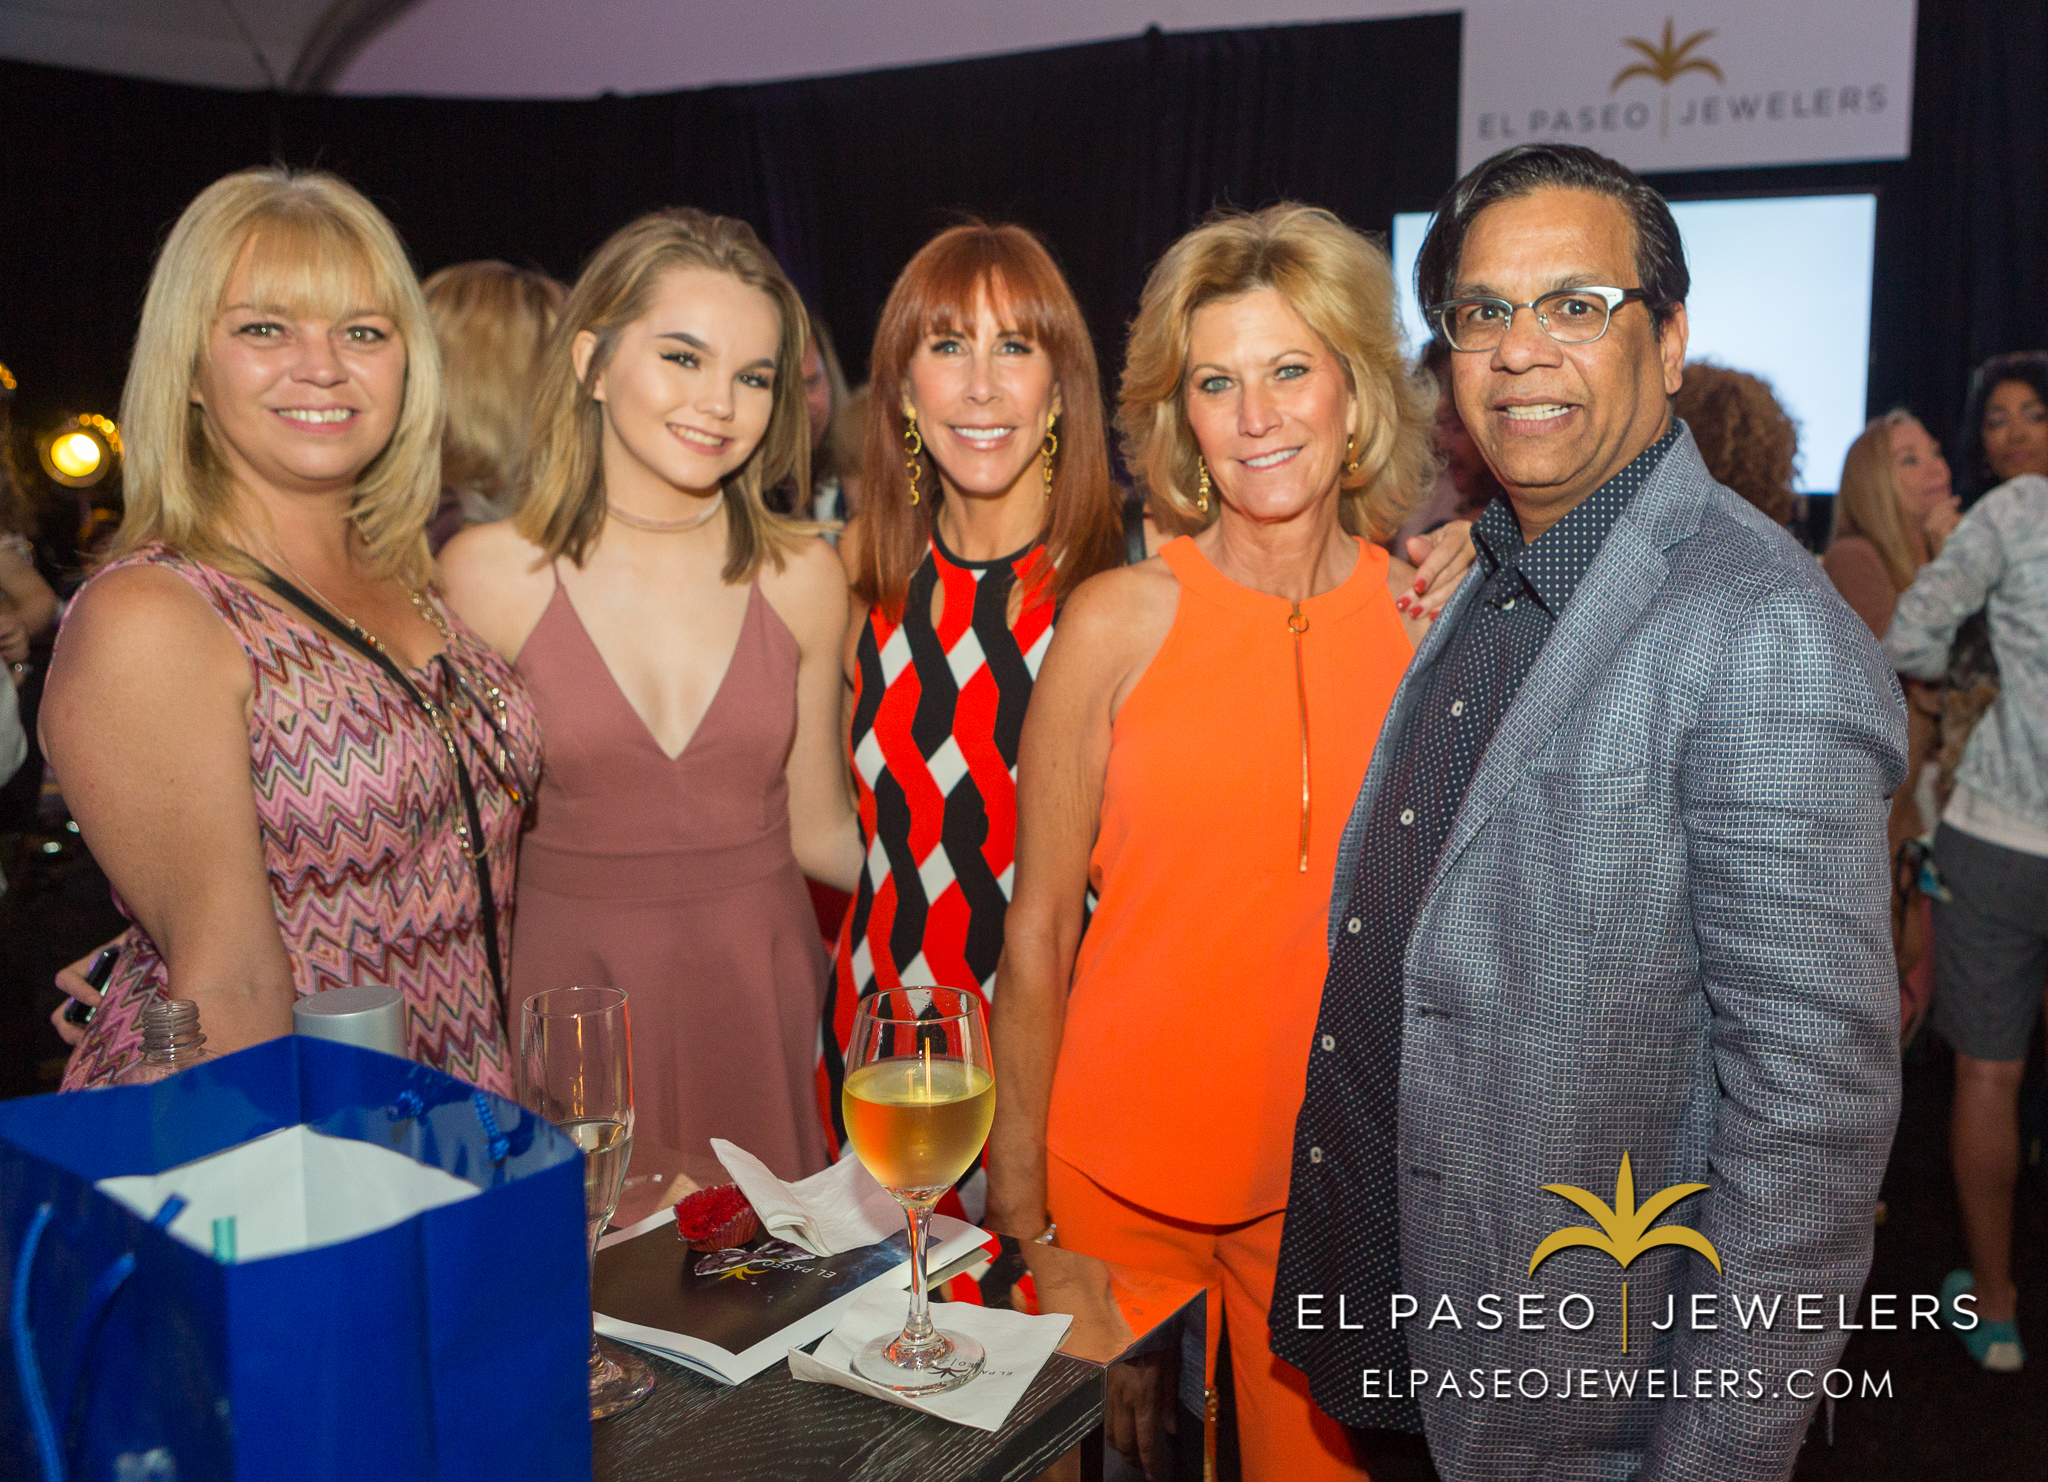 El Paseo Jewelers Fashion Week El Paseo – Day 2 – March 19th, 2017